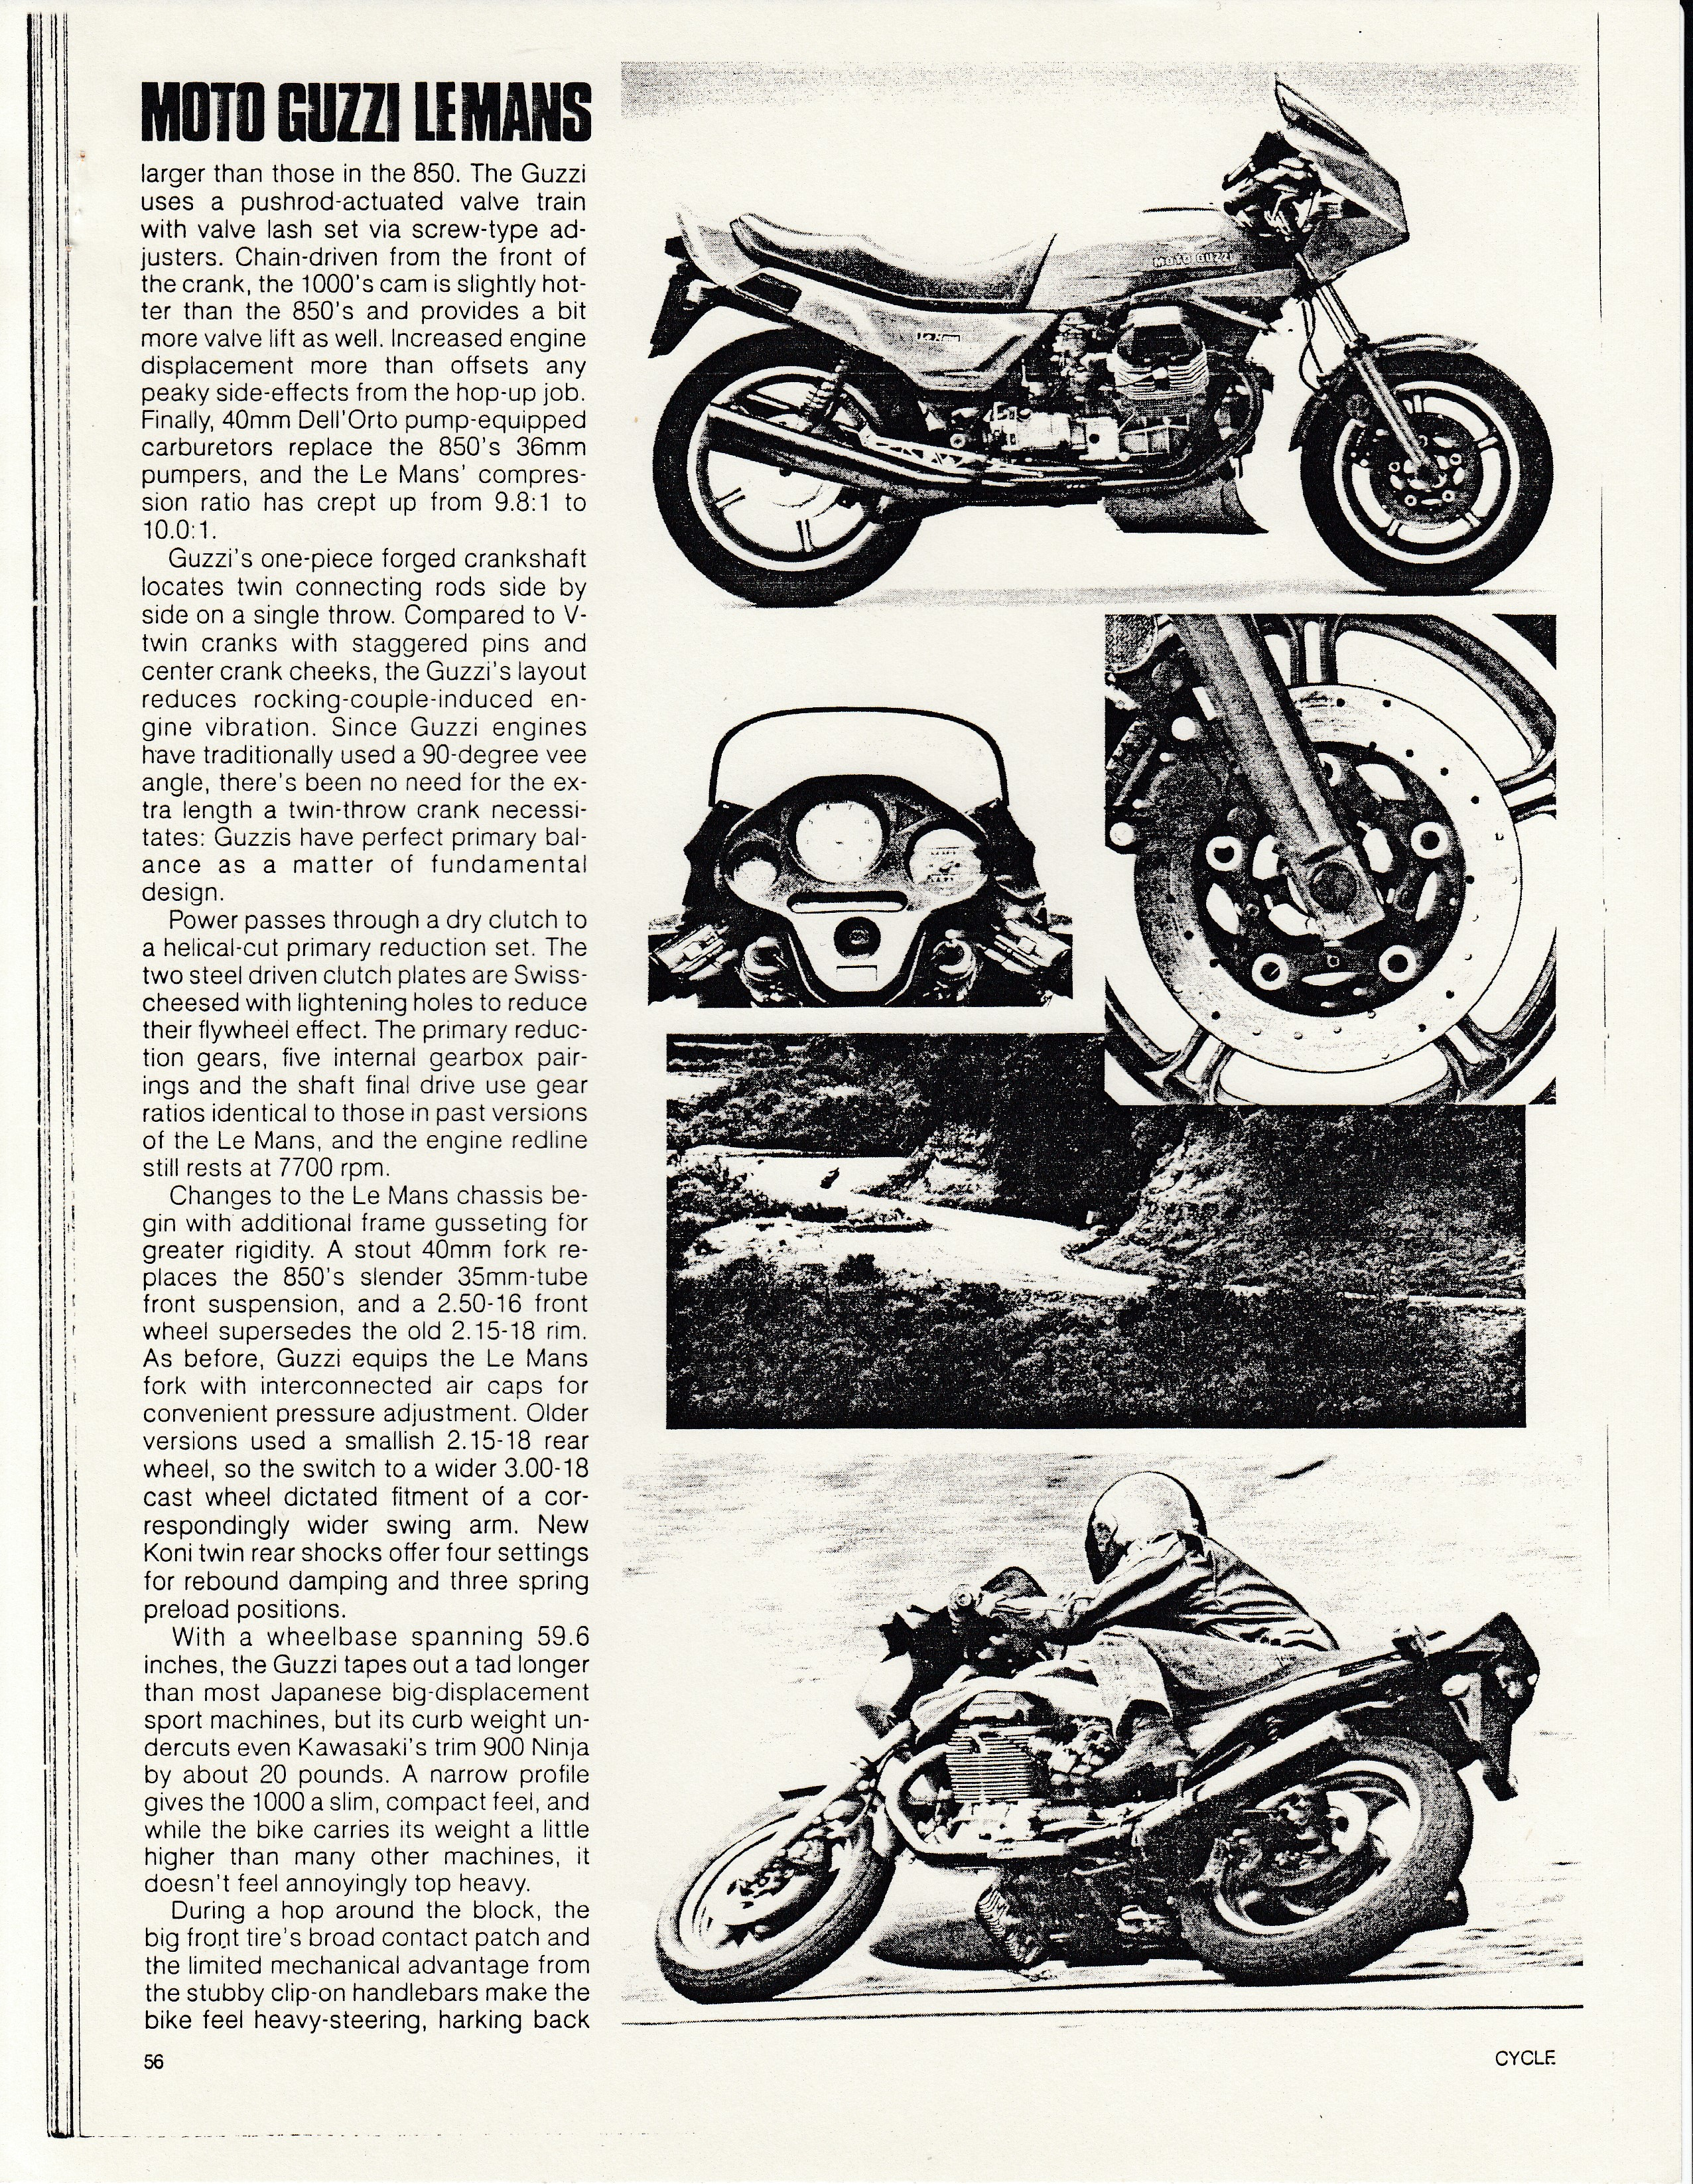 Article - Cycle (1986 March) Moto Guzzi Le Mans 1000 (with a sidebar about Dr. John Wittner)